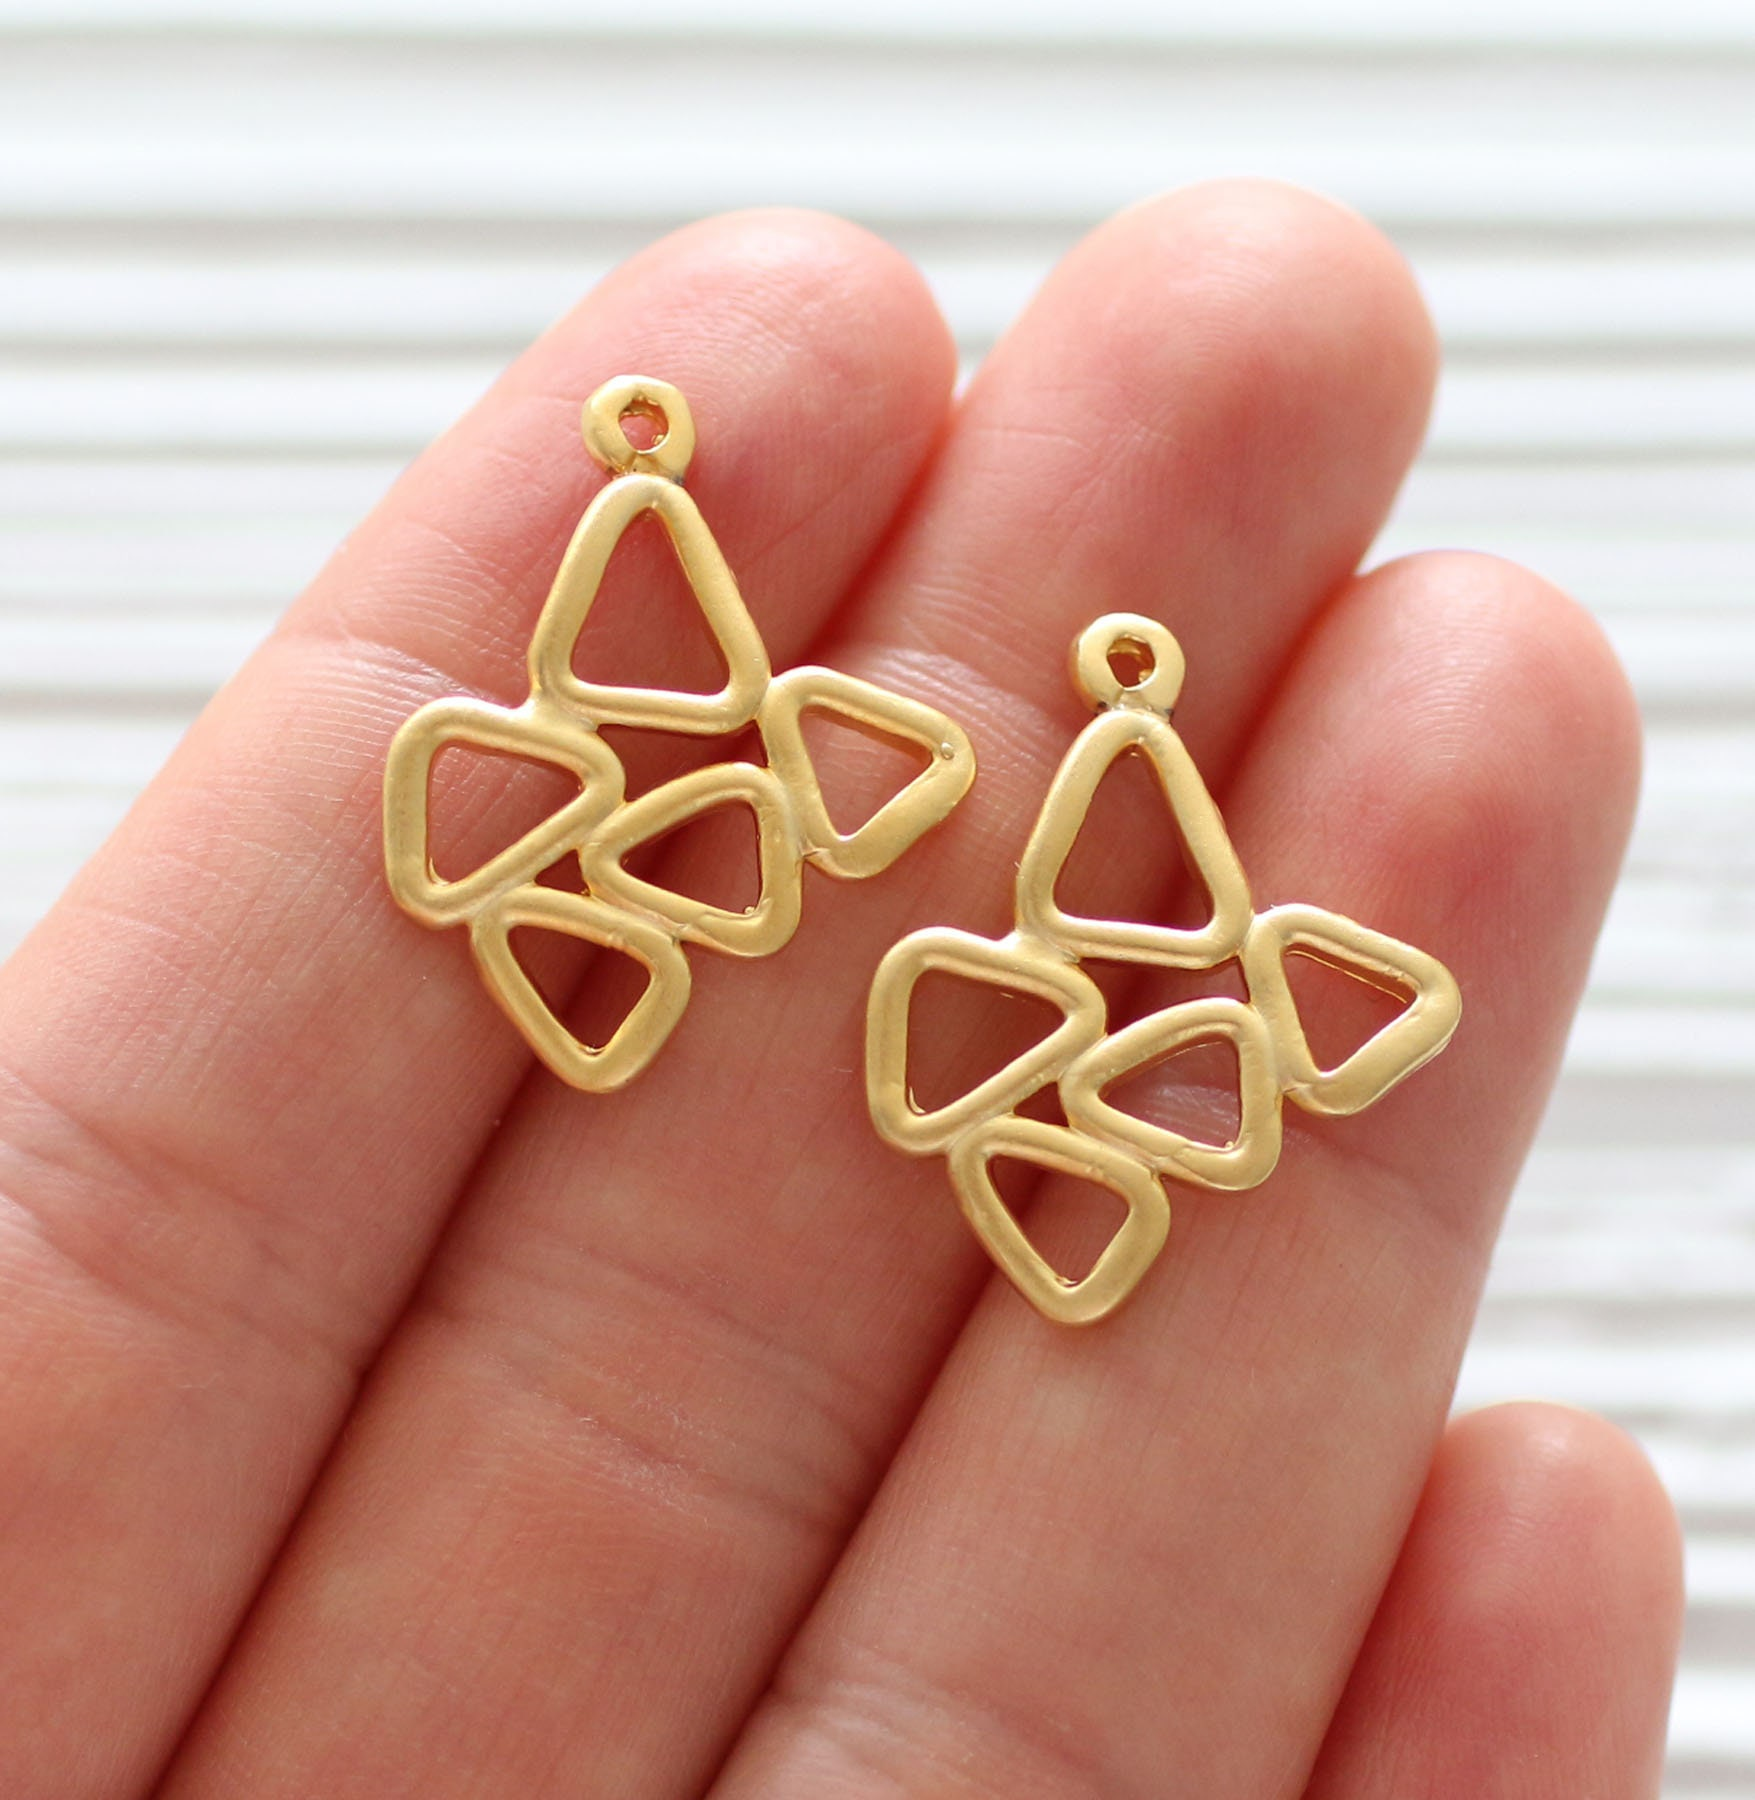 multiple triangle charm earrings dangle rustic abstract charm pendant geometrical necklace charms 2pc large tribal charms silver